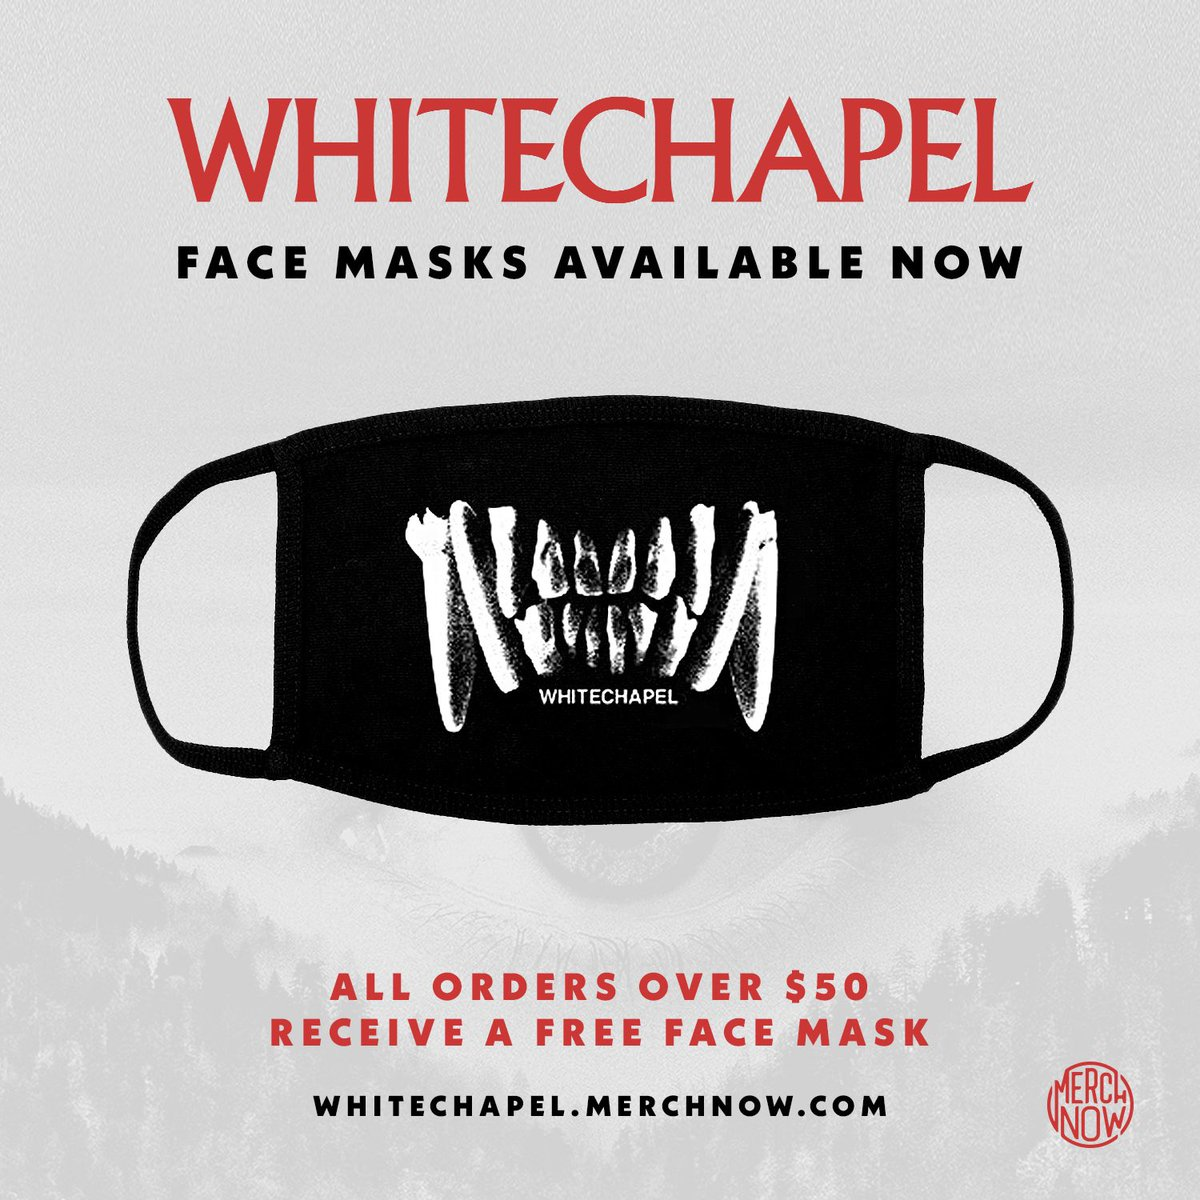 Black Bear Face Masks in stock!  Available for purchase at https://t.co/V4dAKEnU0n or spend $50+ and we will throw one in for free!  Limited quantities, grab one while you can. https://t.co/laFBiTbLfX